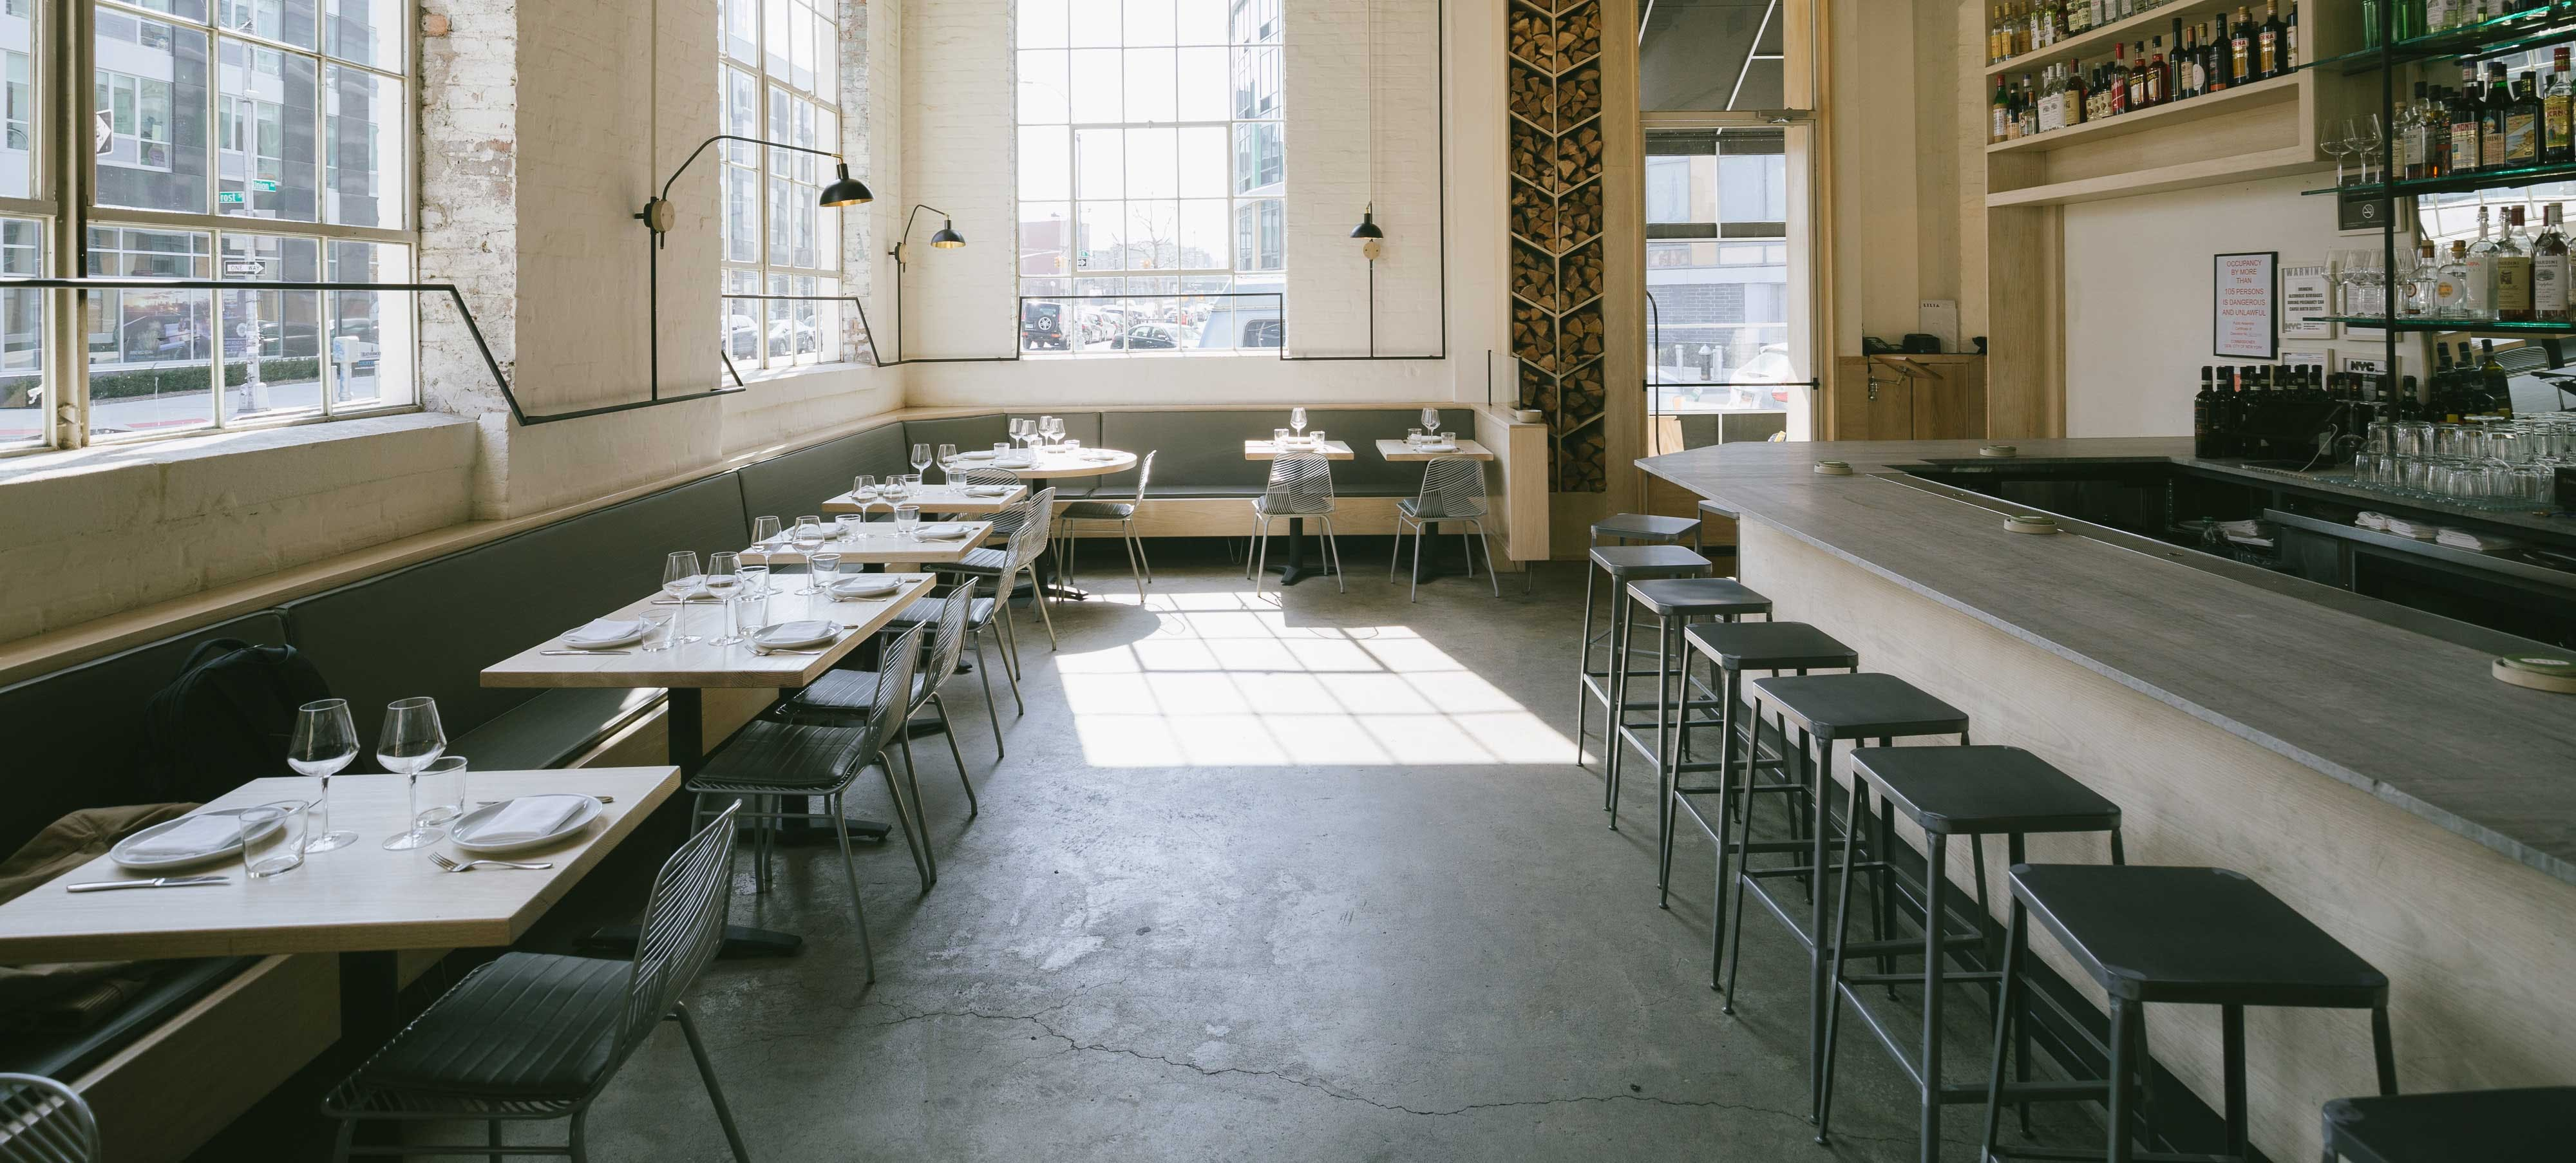 Great ideas for a first date nyc restaurants